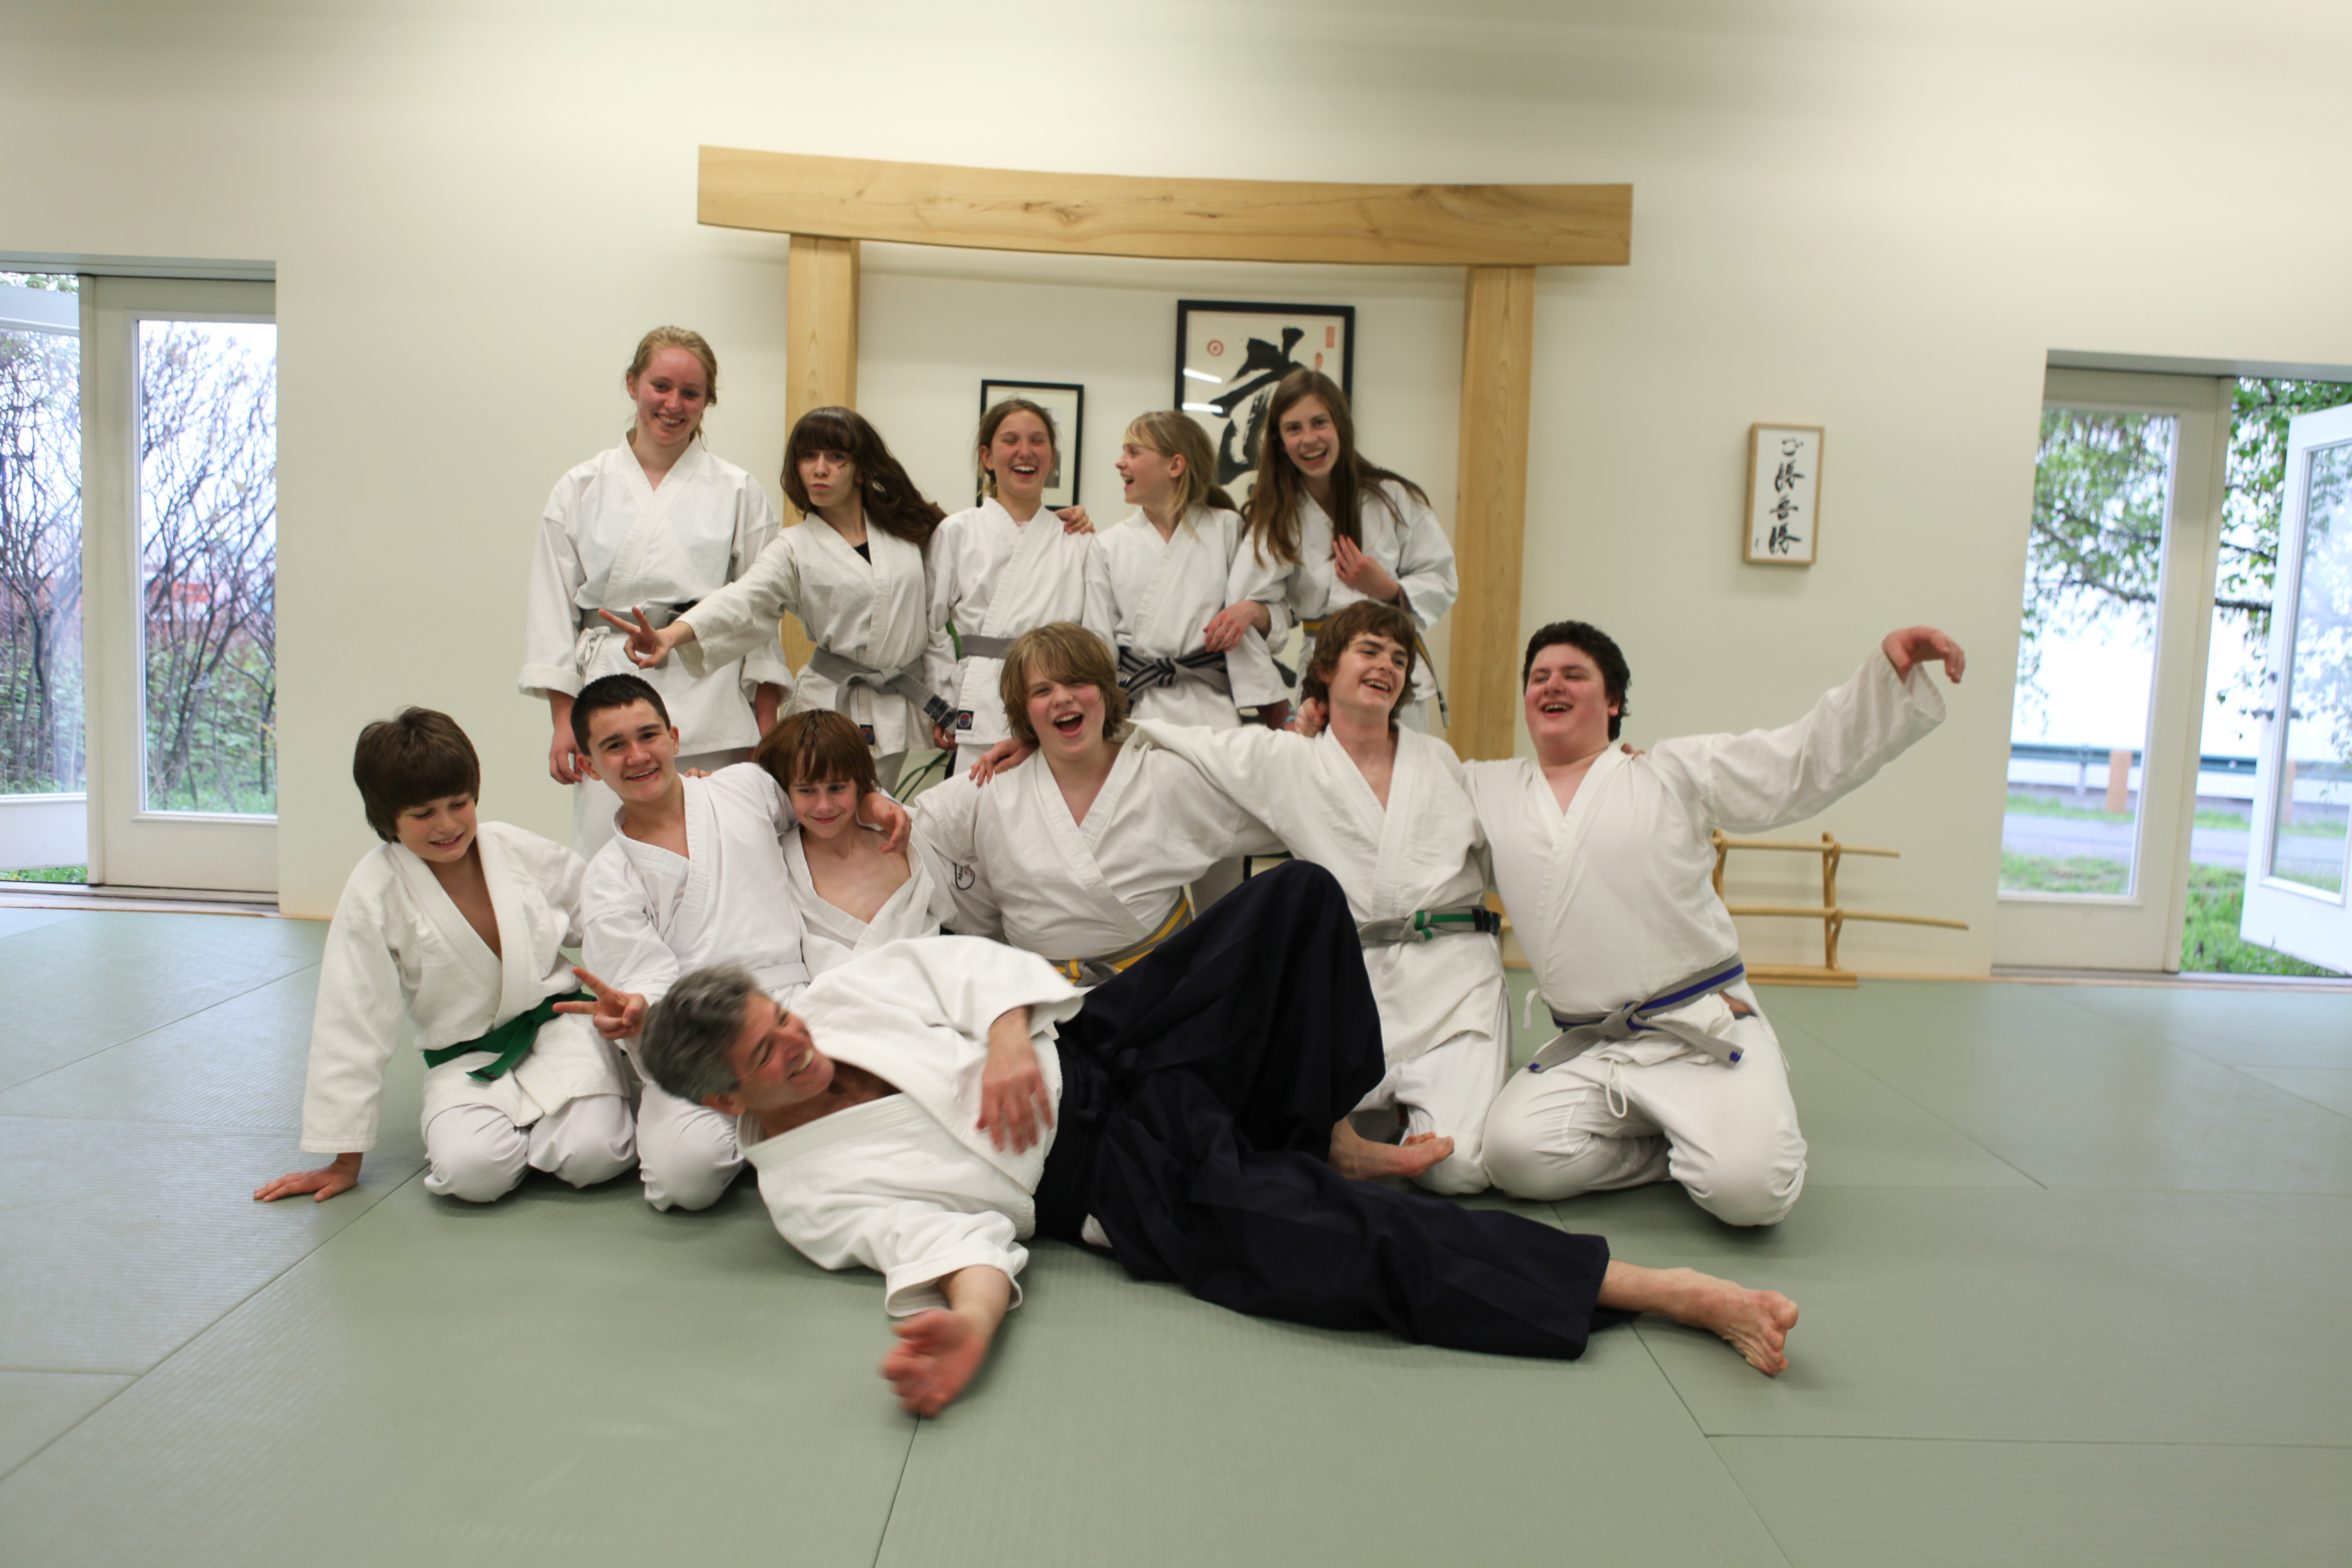 youth martial arts program -aikido is full of lessons to